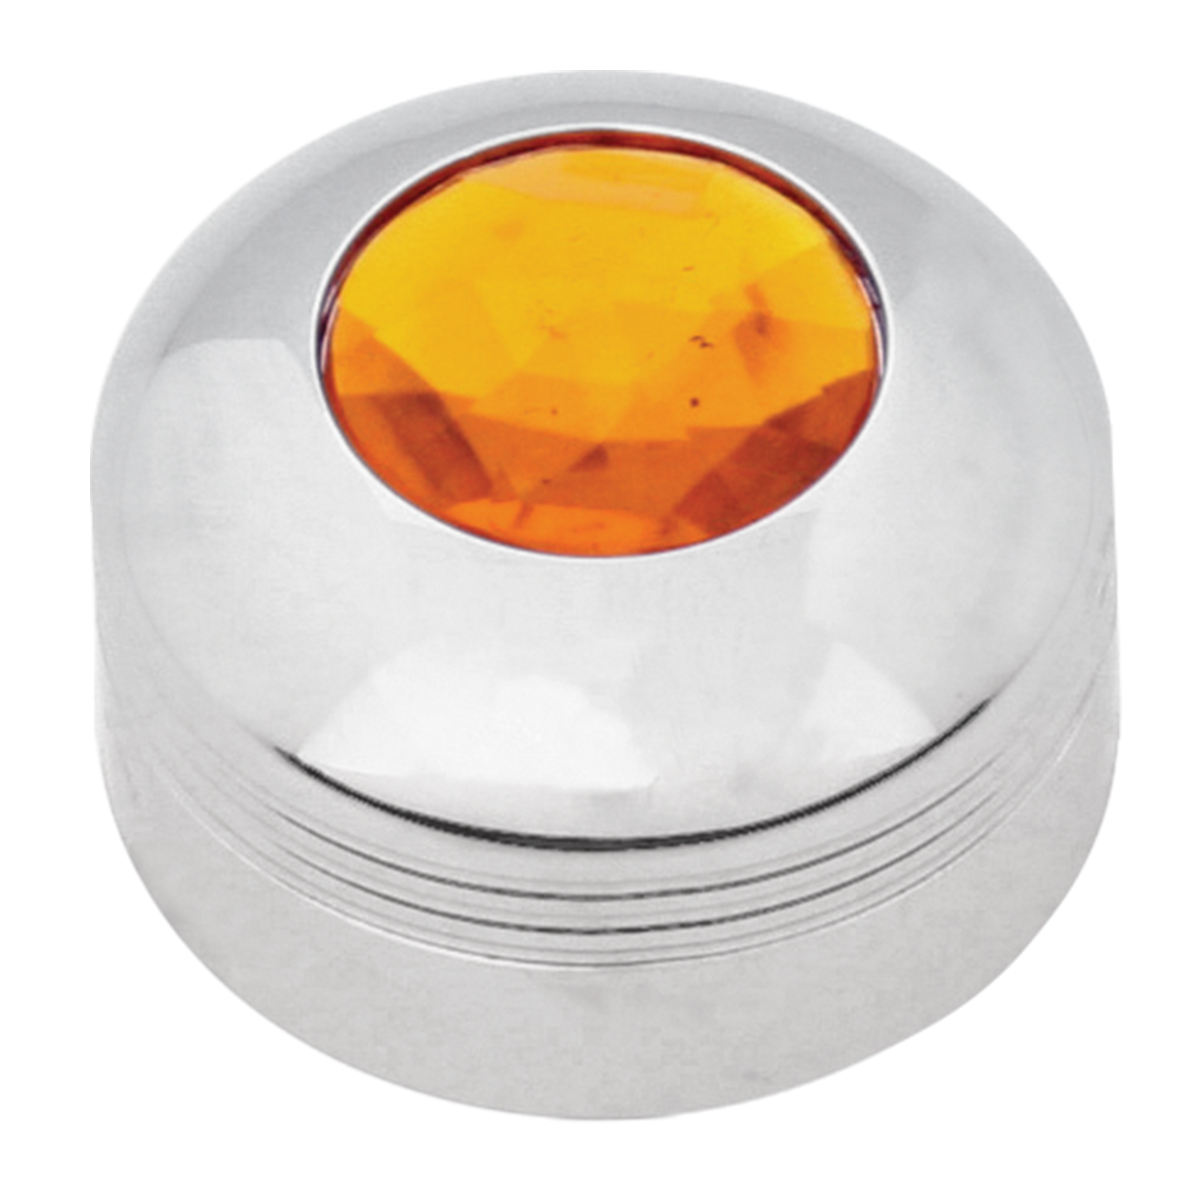 69050 Chrome Plastic A/C Know with Amber Plastic Jewel for KW